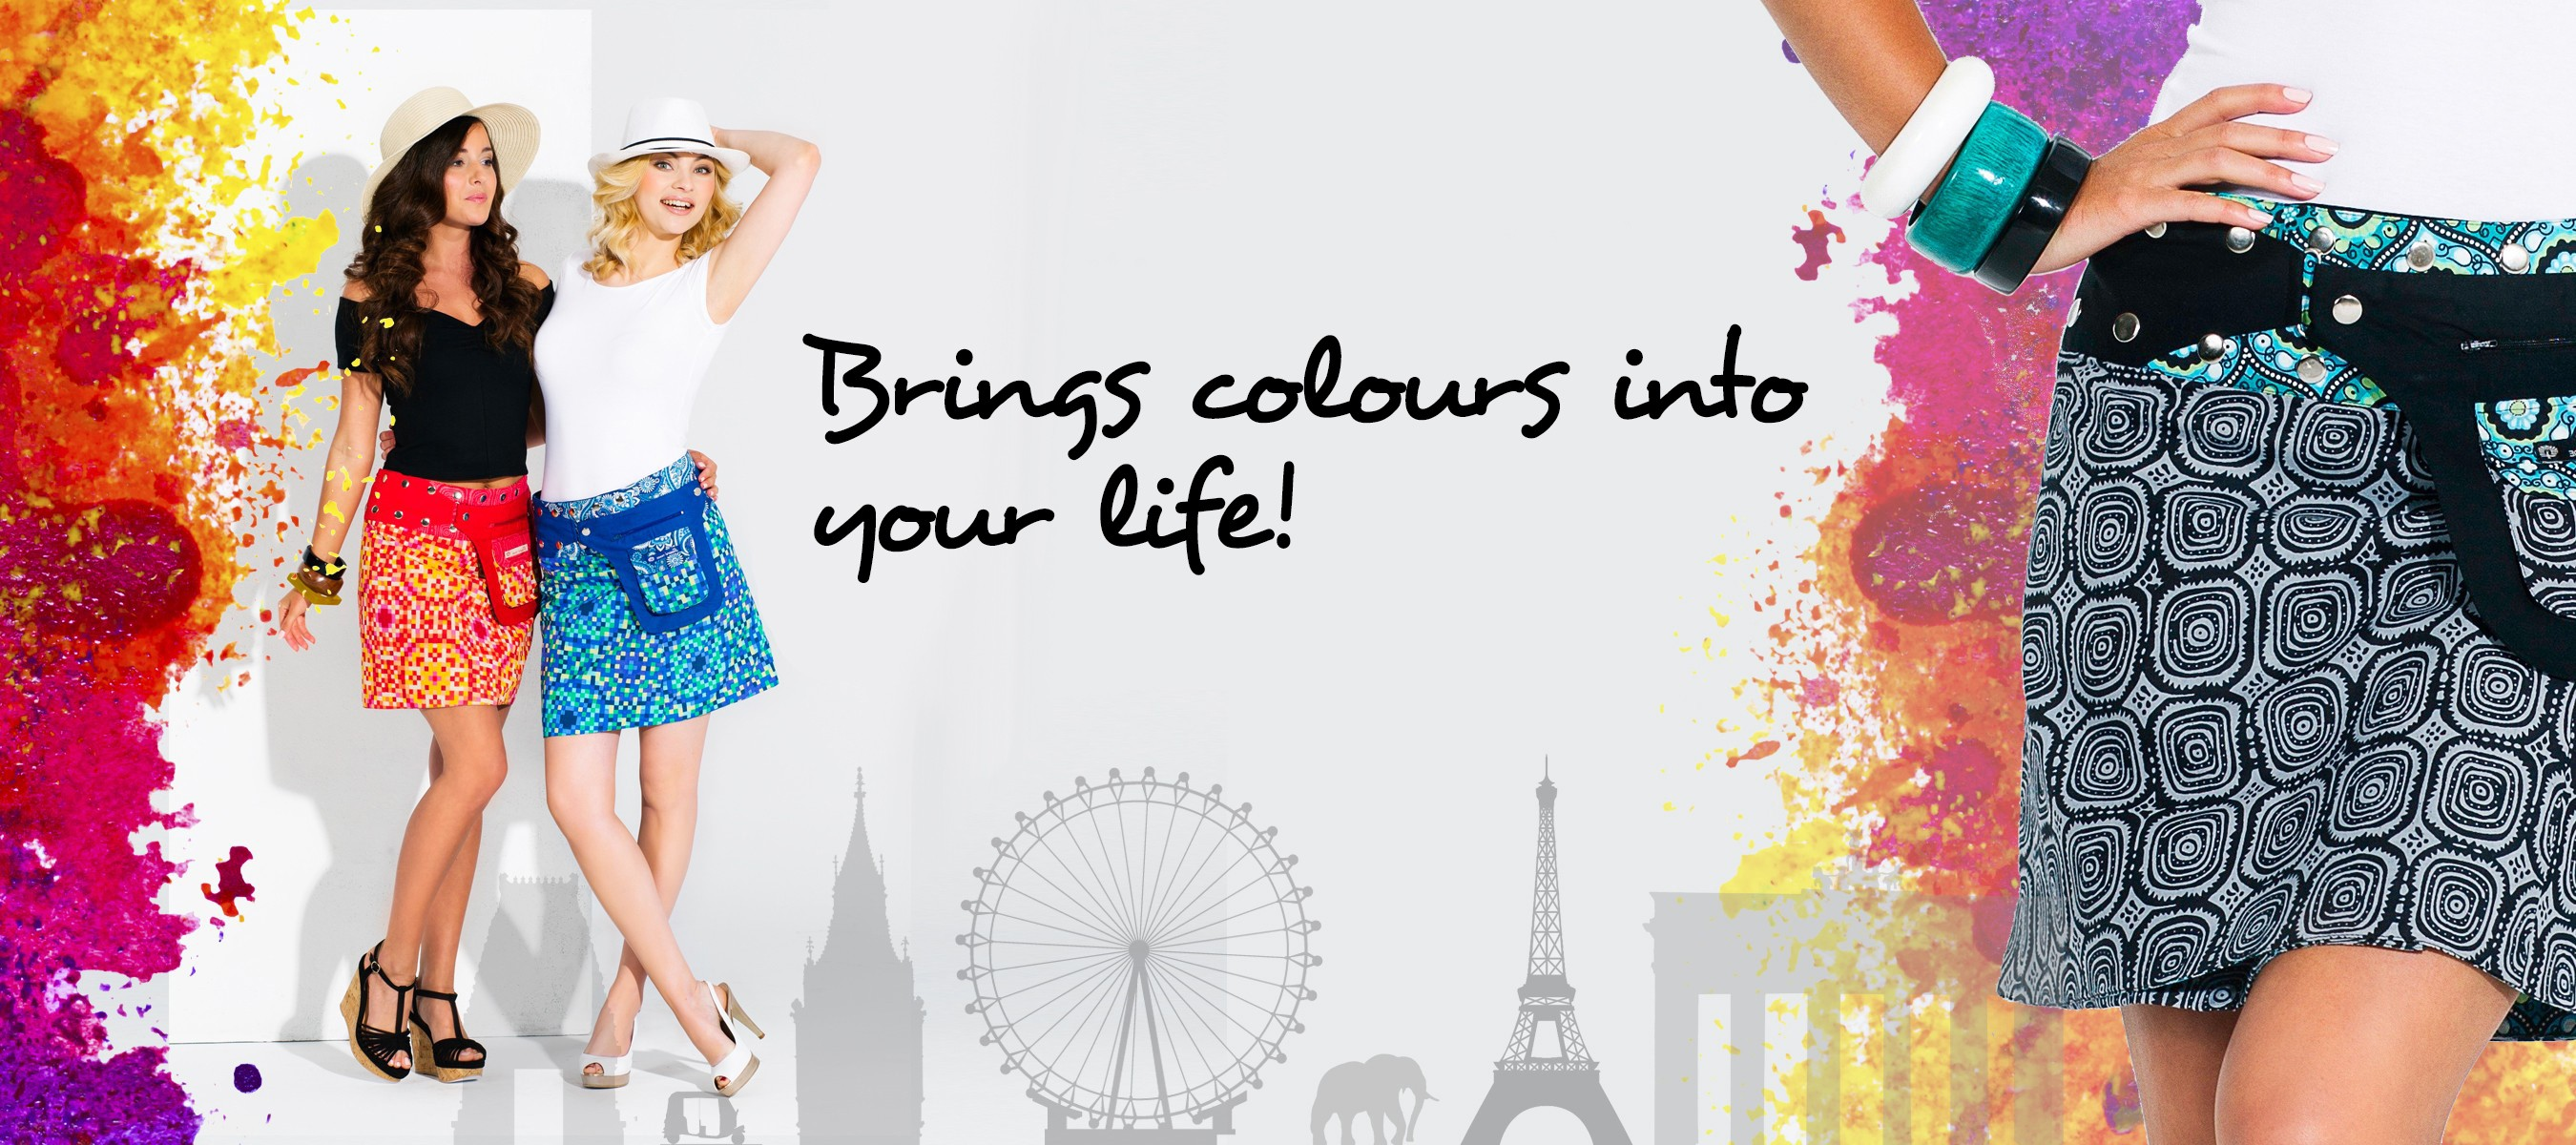 Brings colours into your life!